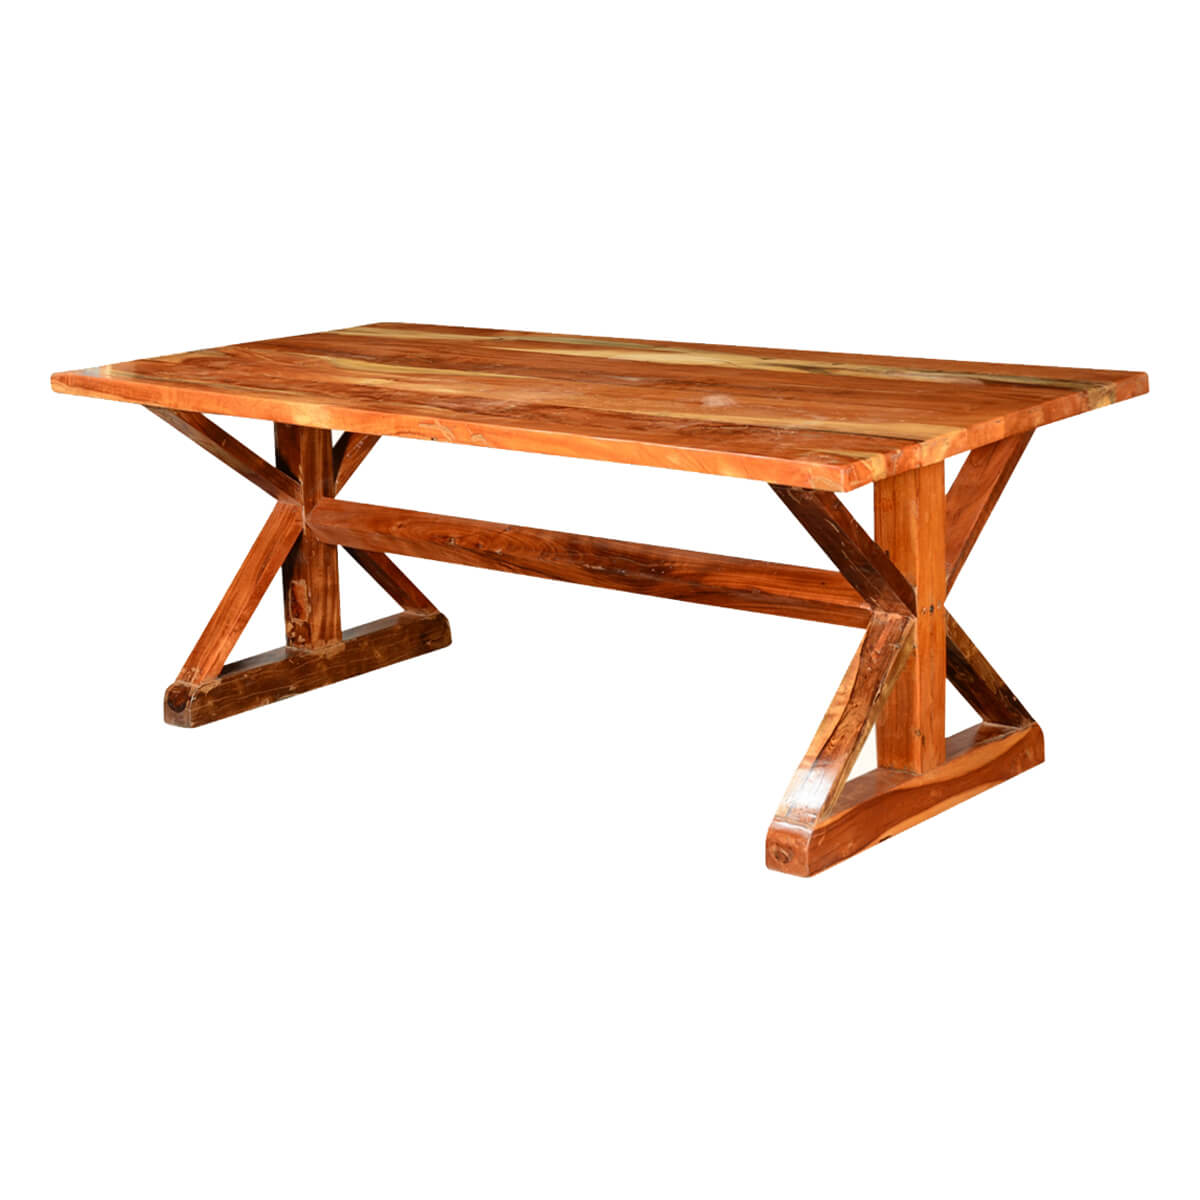 Rustic x legs acacia wood 78 5 picnic style trestle for Trestle dining table